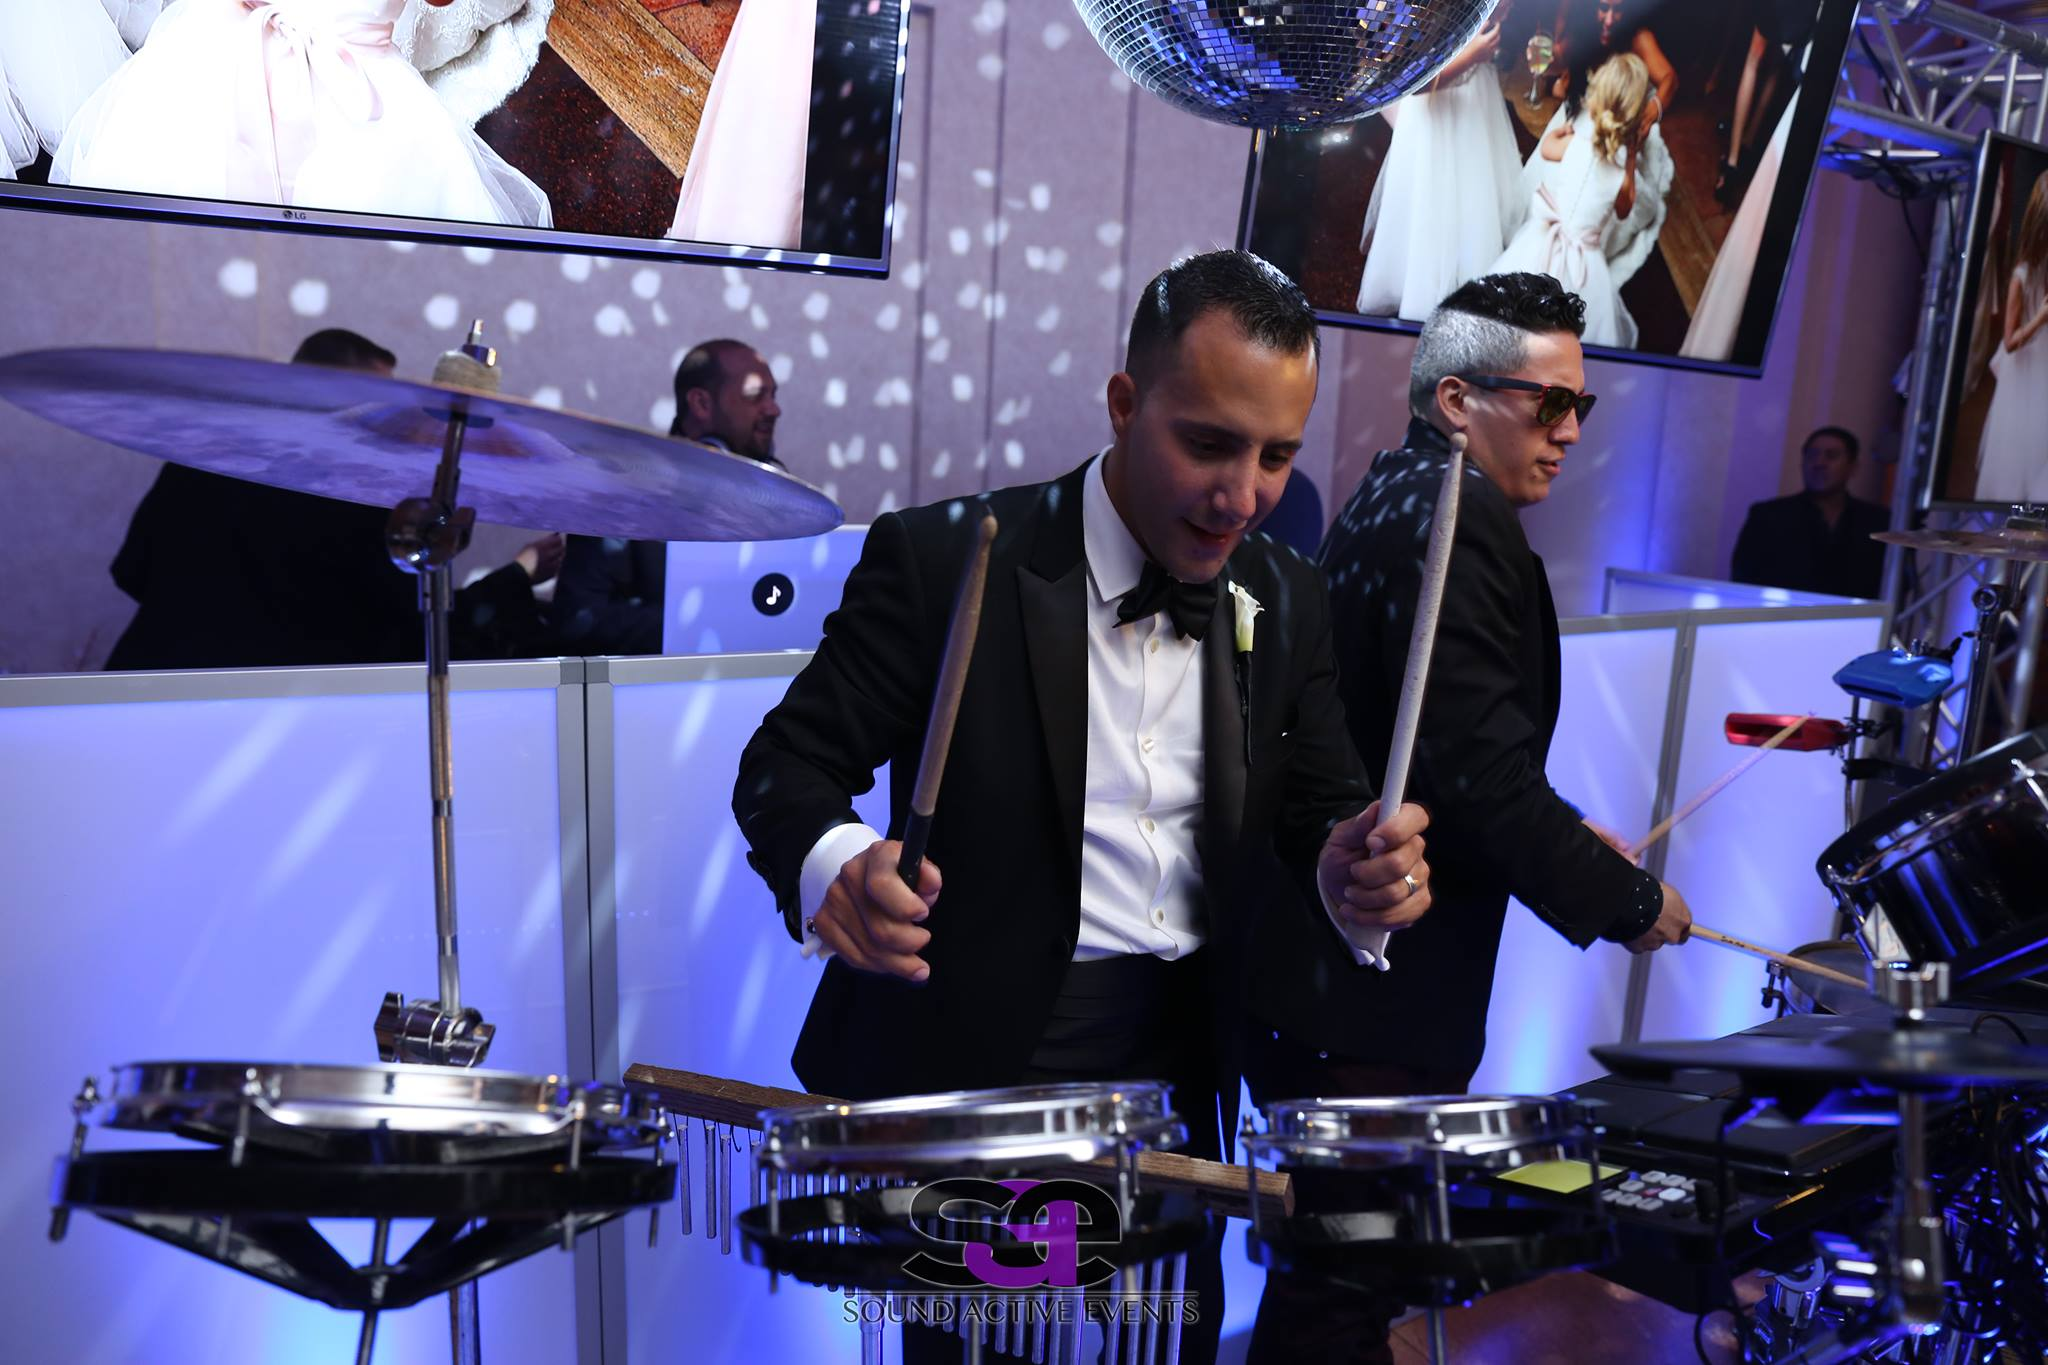 Wedding Drummer